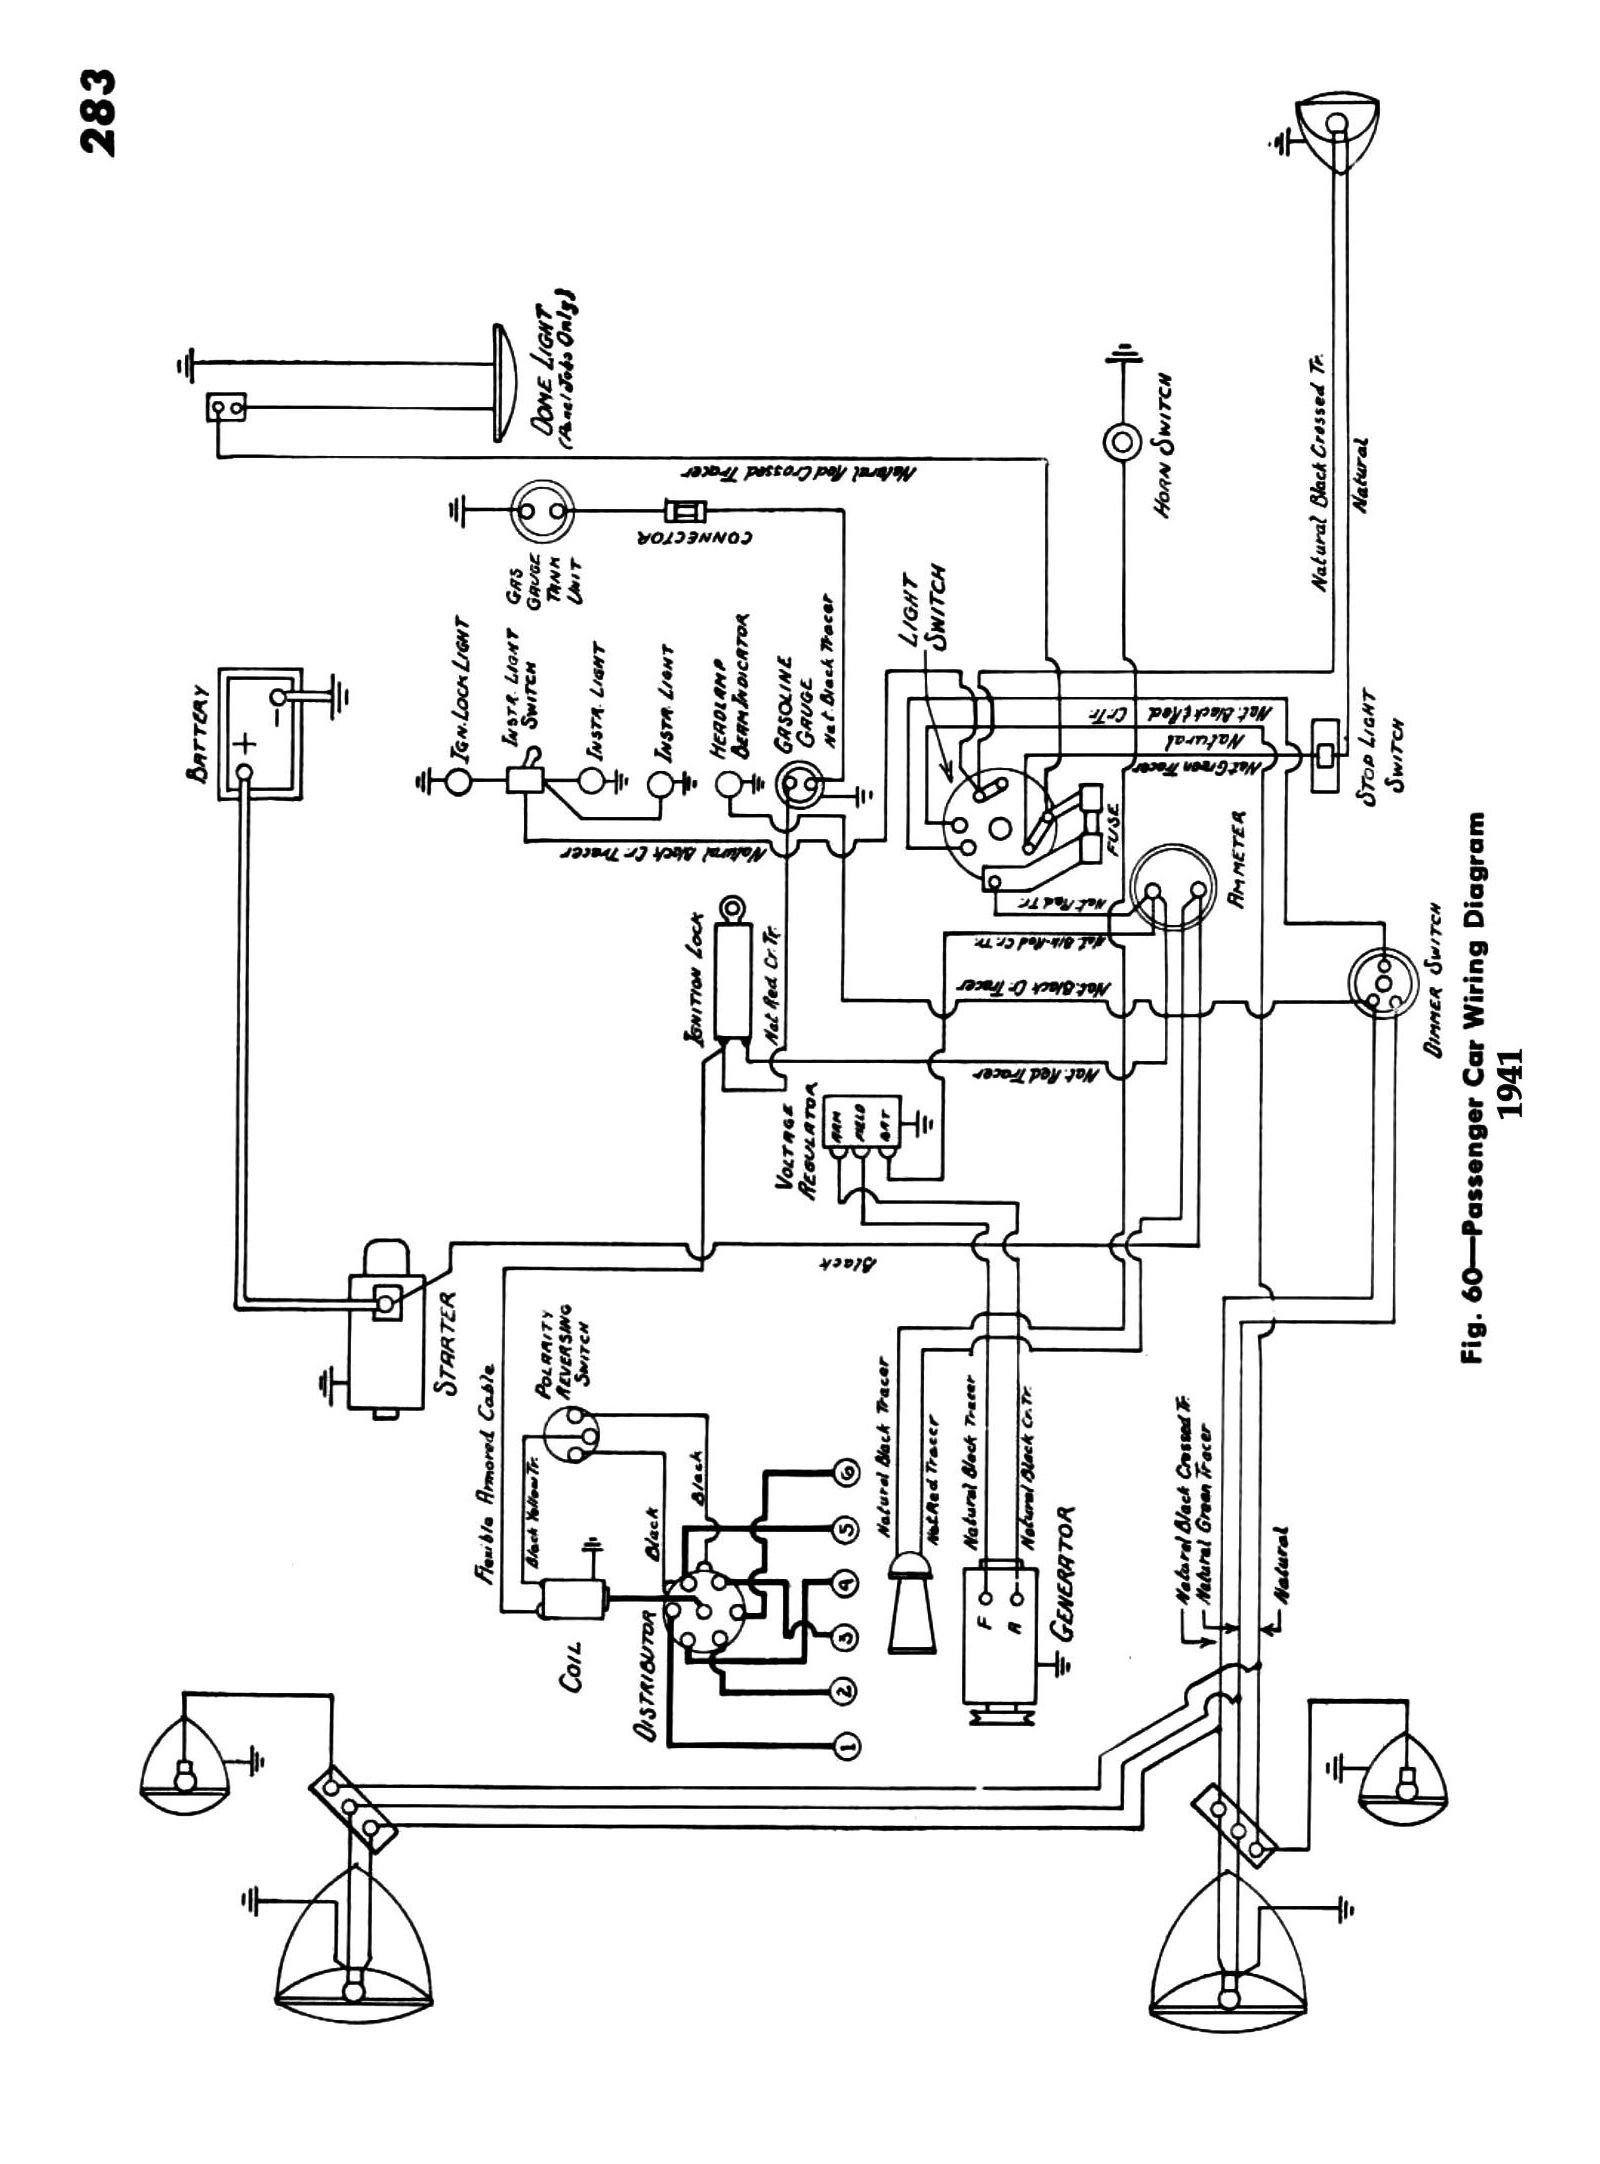 hight resolution of 96 volvo 850 engine diagram